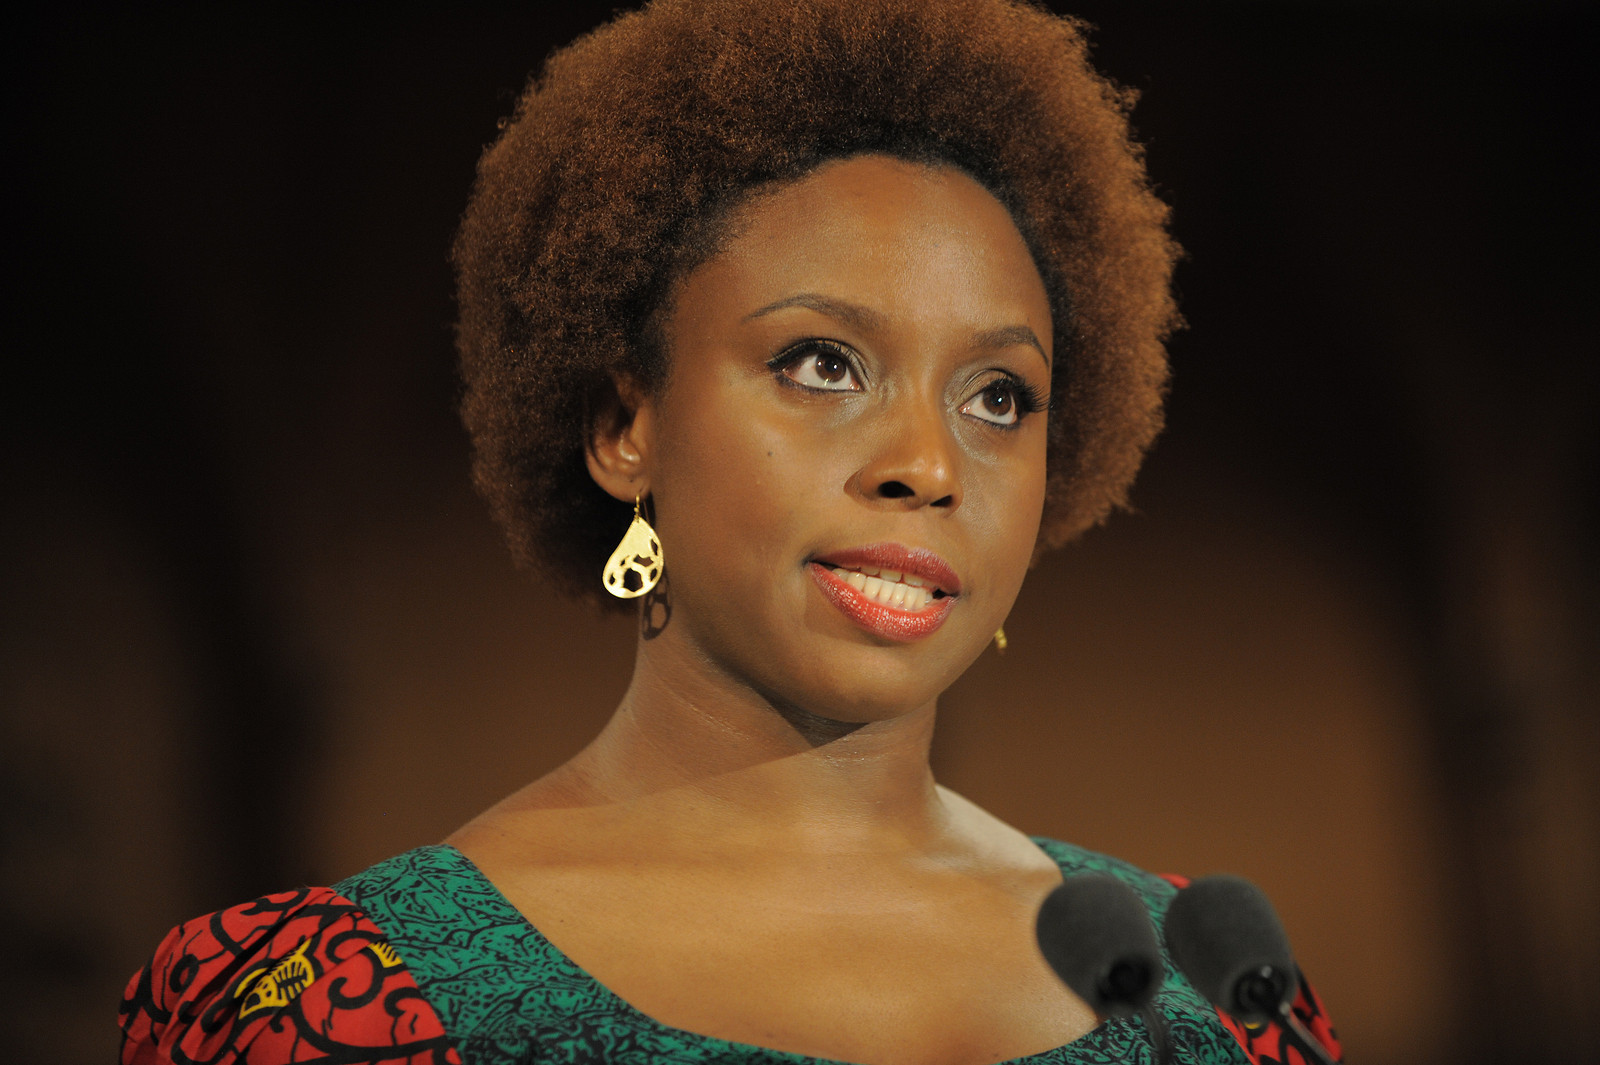 """I think the world in general has complicated feelings about women in authority""- Chimamanda Adichie on how Hillary Clinton is Portrayed in the Media"